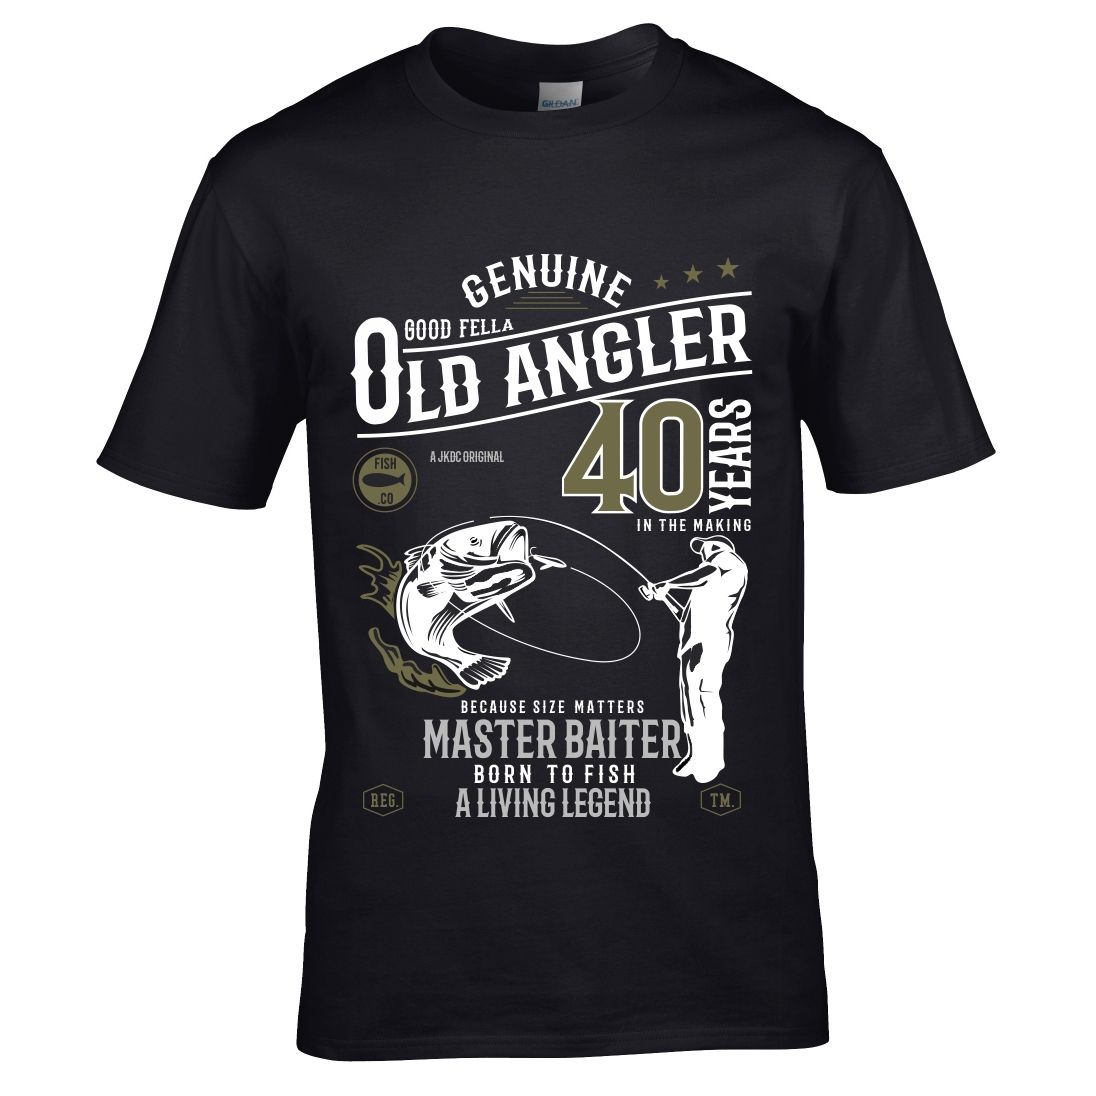 Premium Funny 40 Year Old Angler Fishing Motif For 40th Birthday Anniversary Gift Men S T Shirt Top